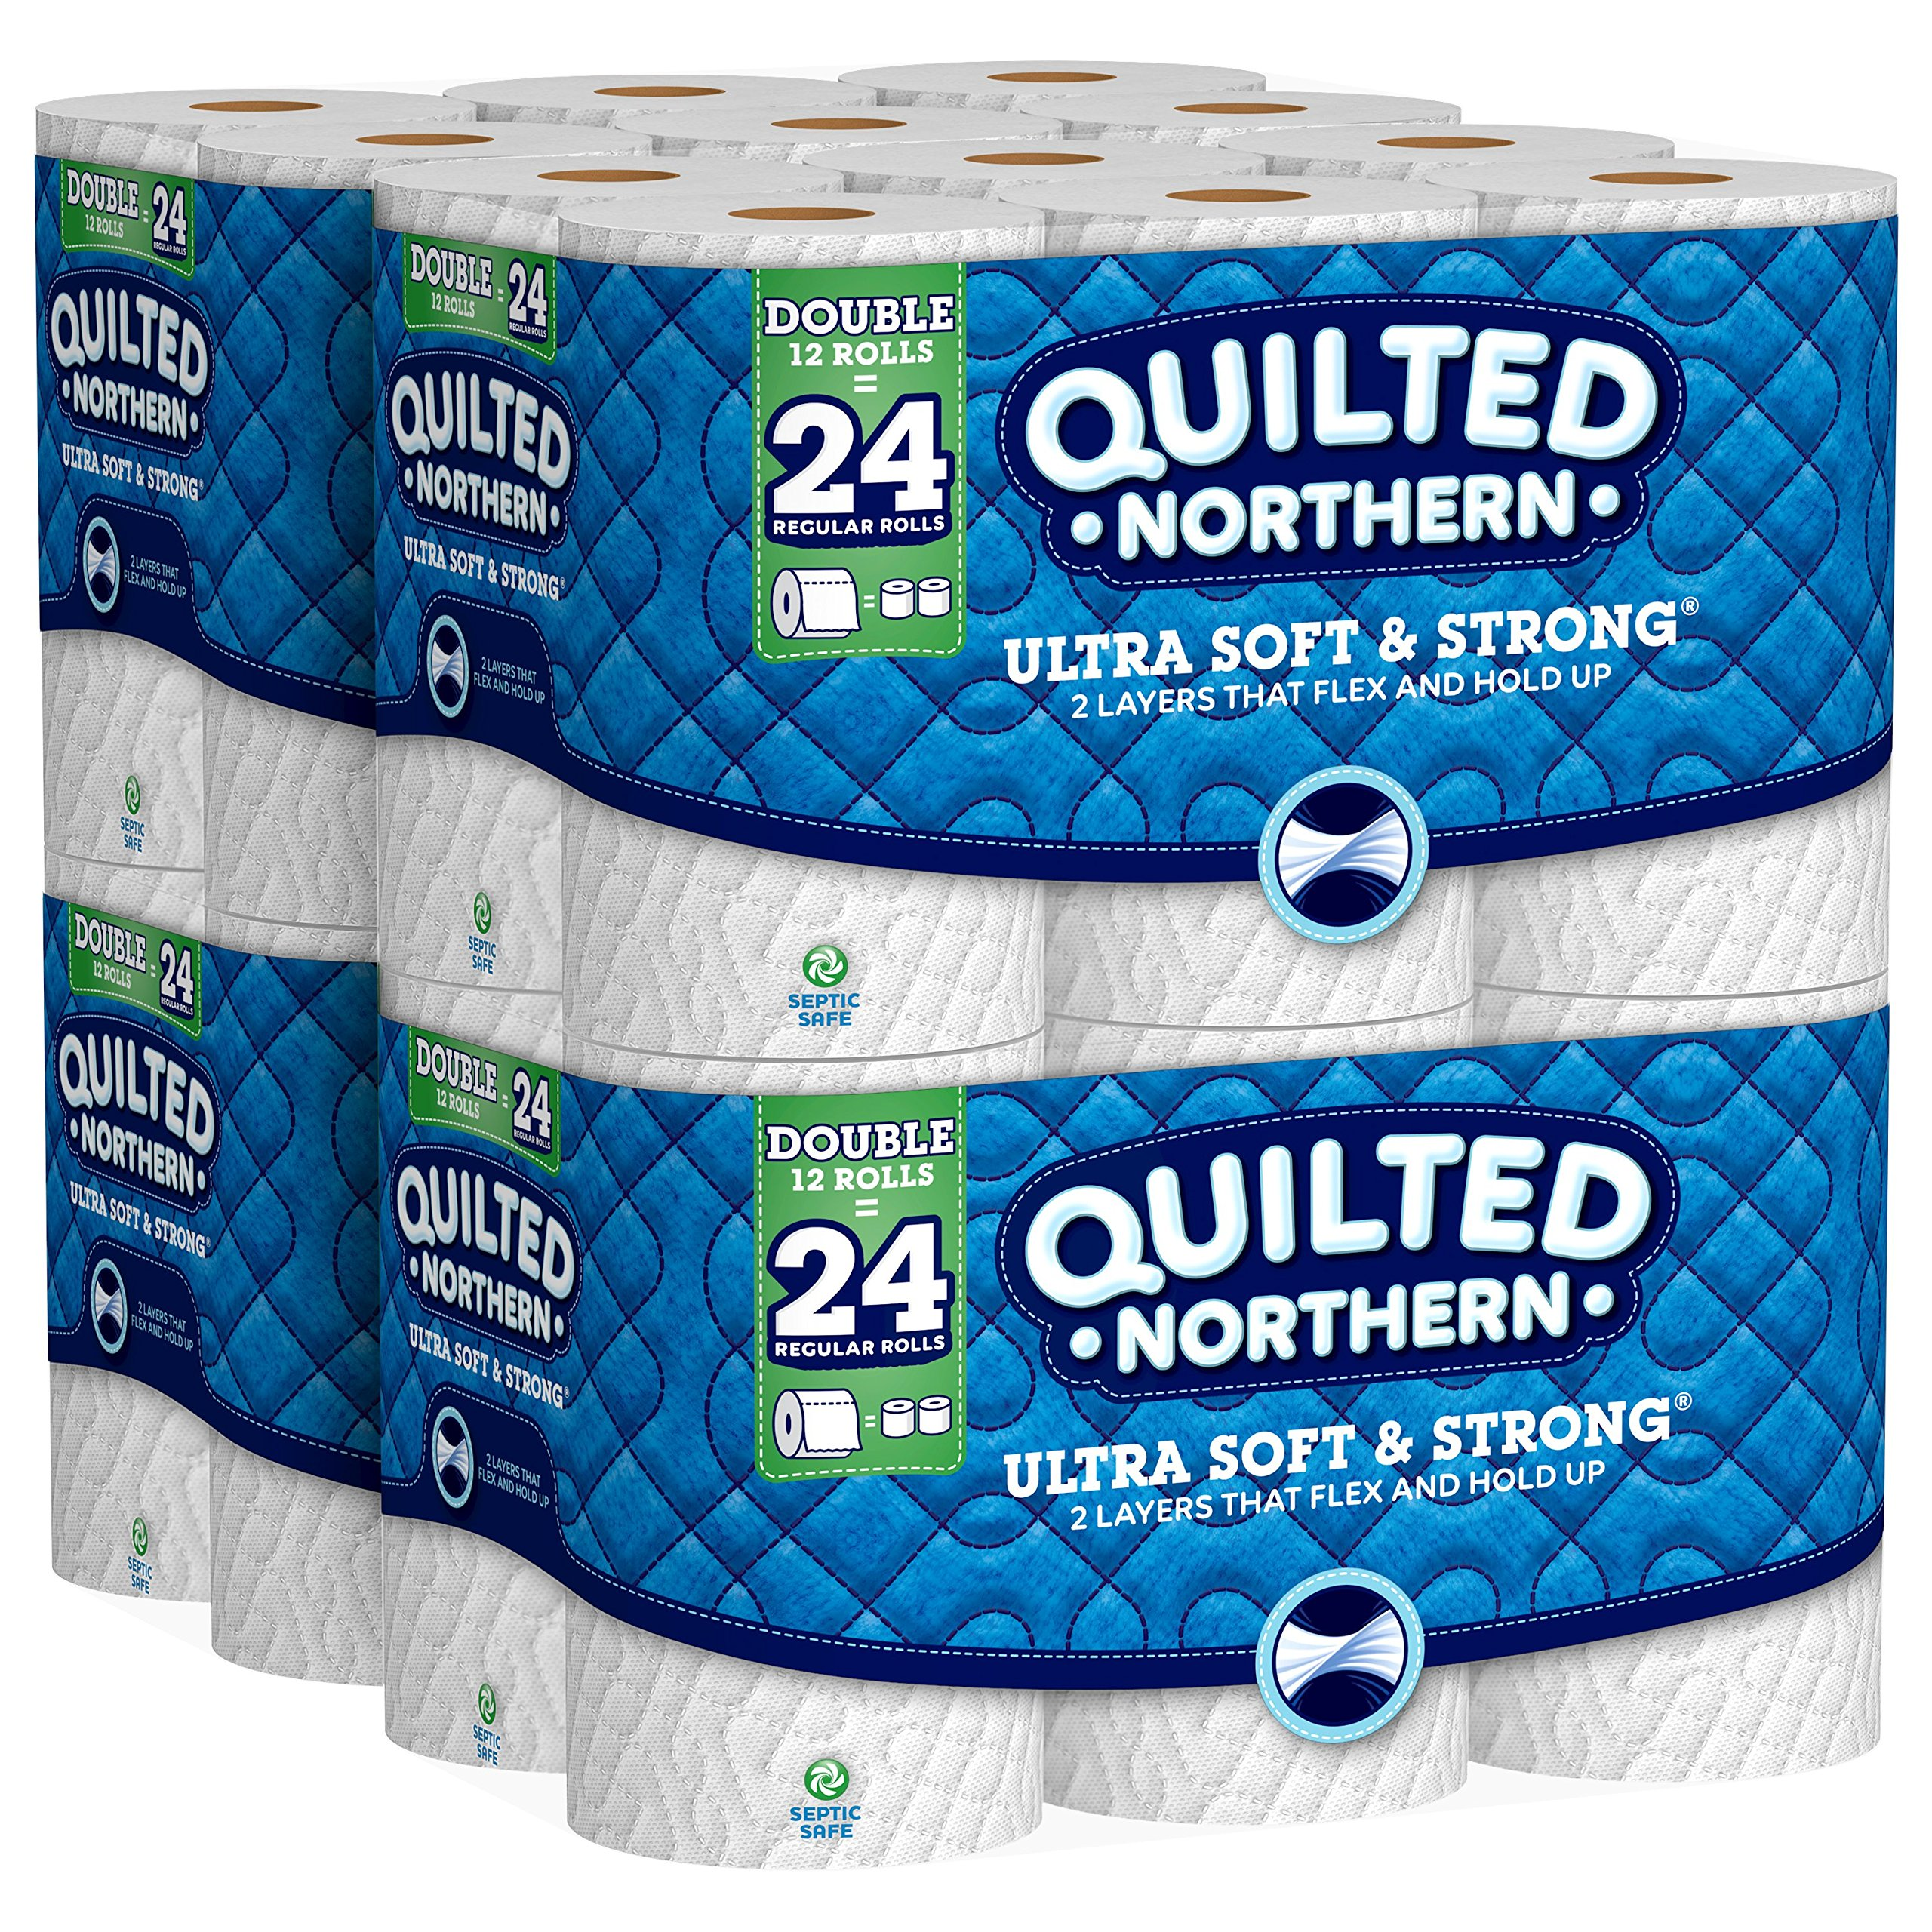 Quilted Northern Ultra Soft & Strong Toilet Paper, 12 Count, Pack of 4 by Quilted Northern